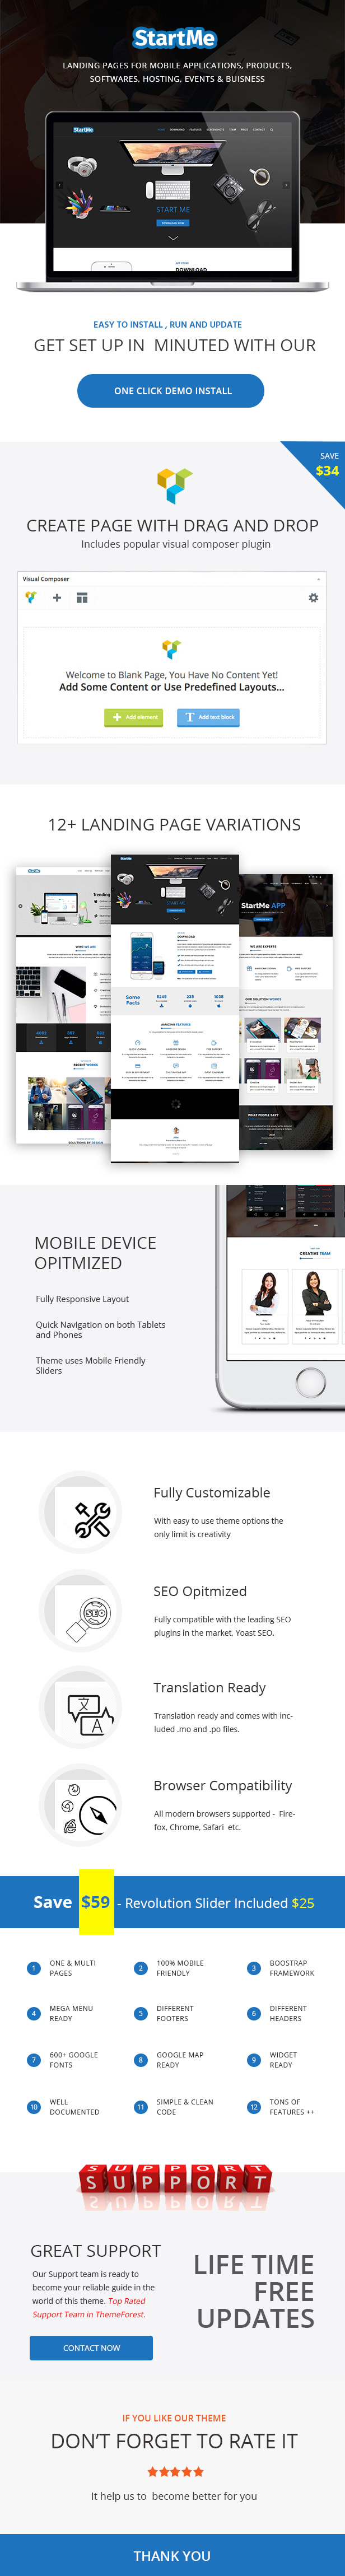 Startme - Landing pages for Mobile App, Products, Software, Hosting & Business - 3